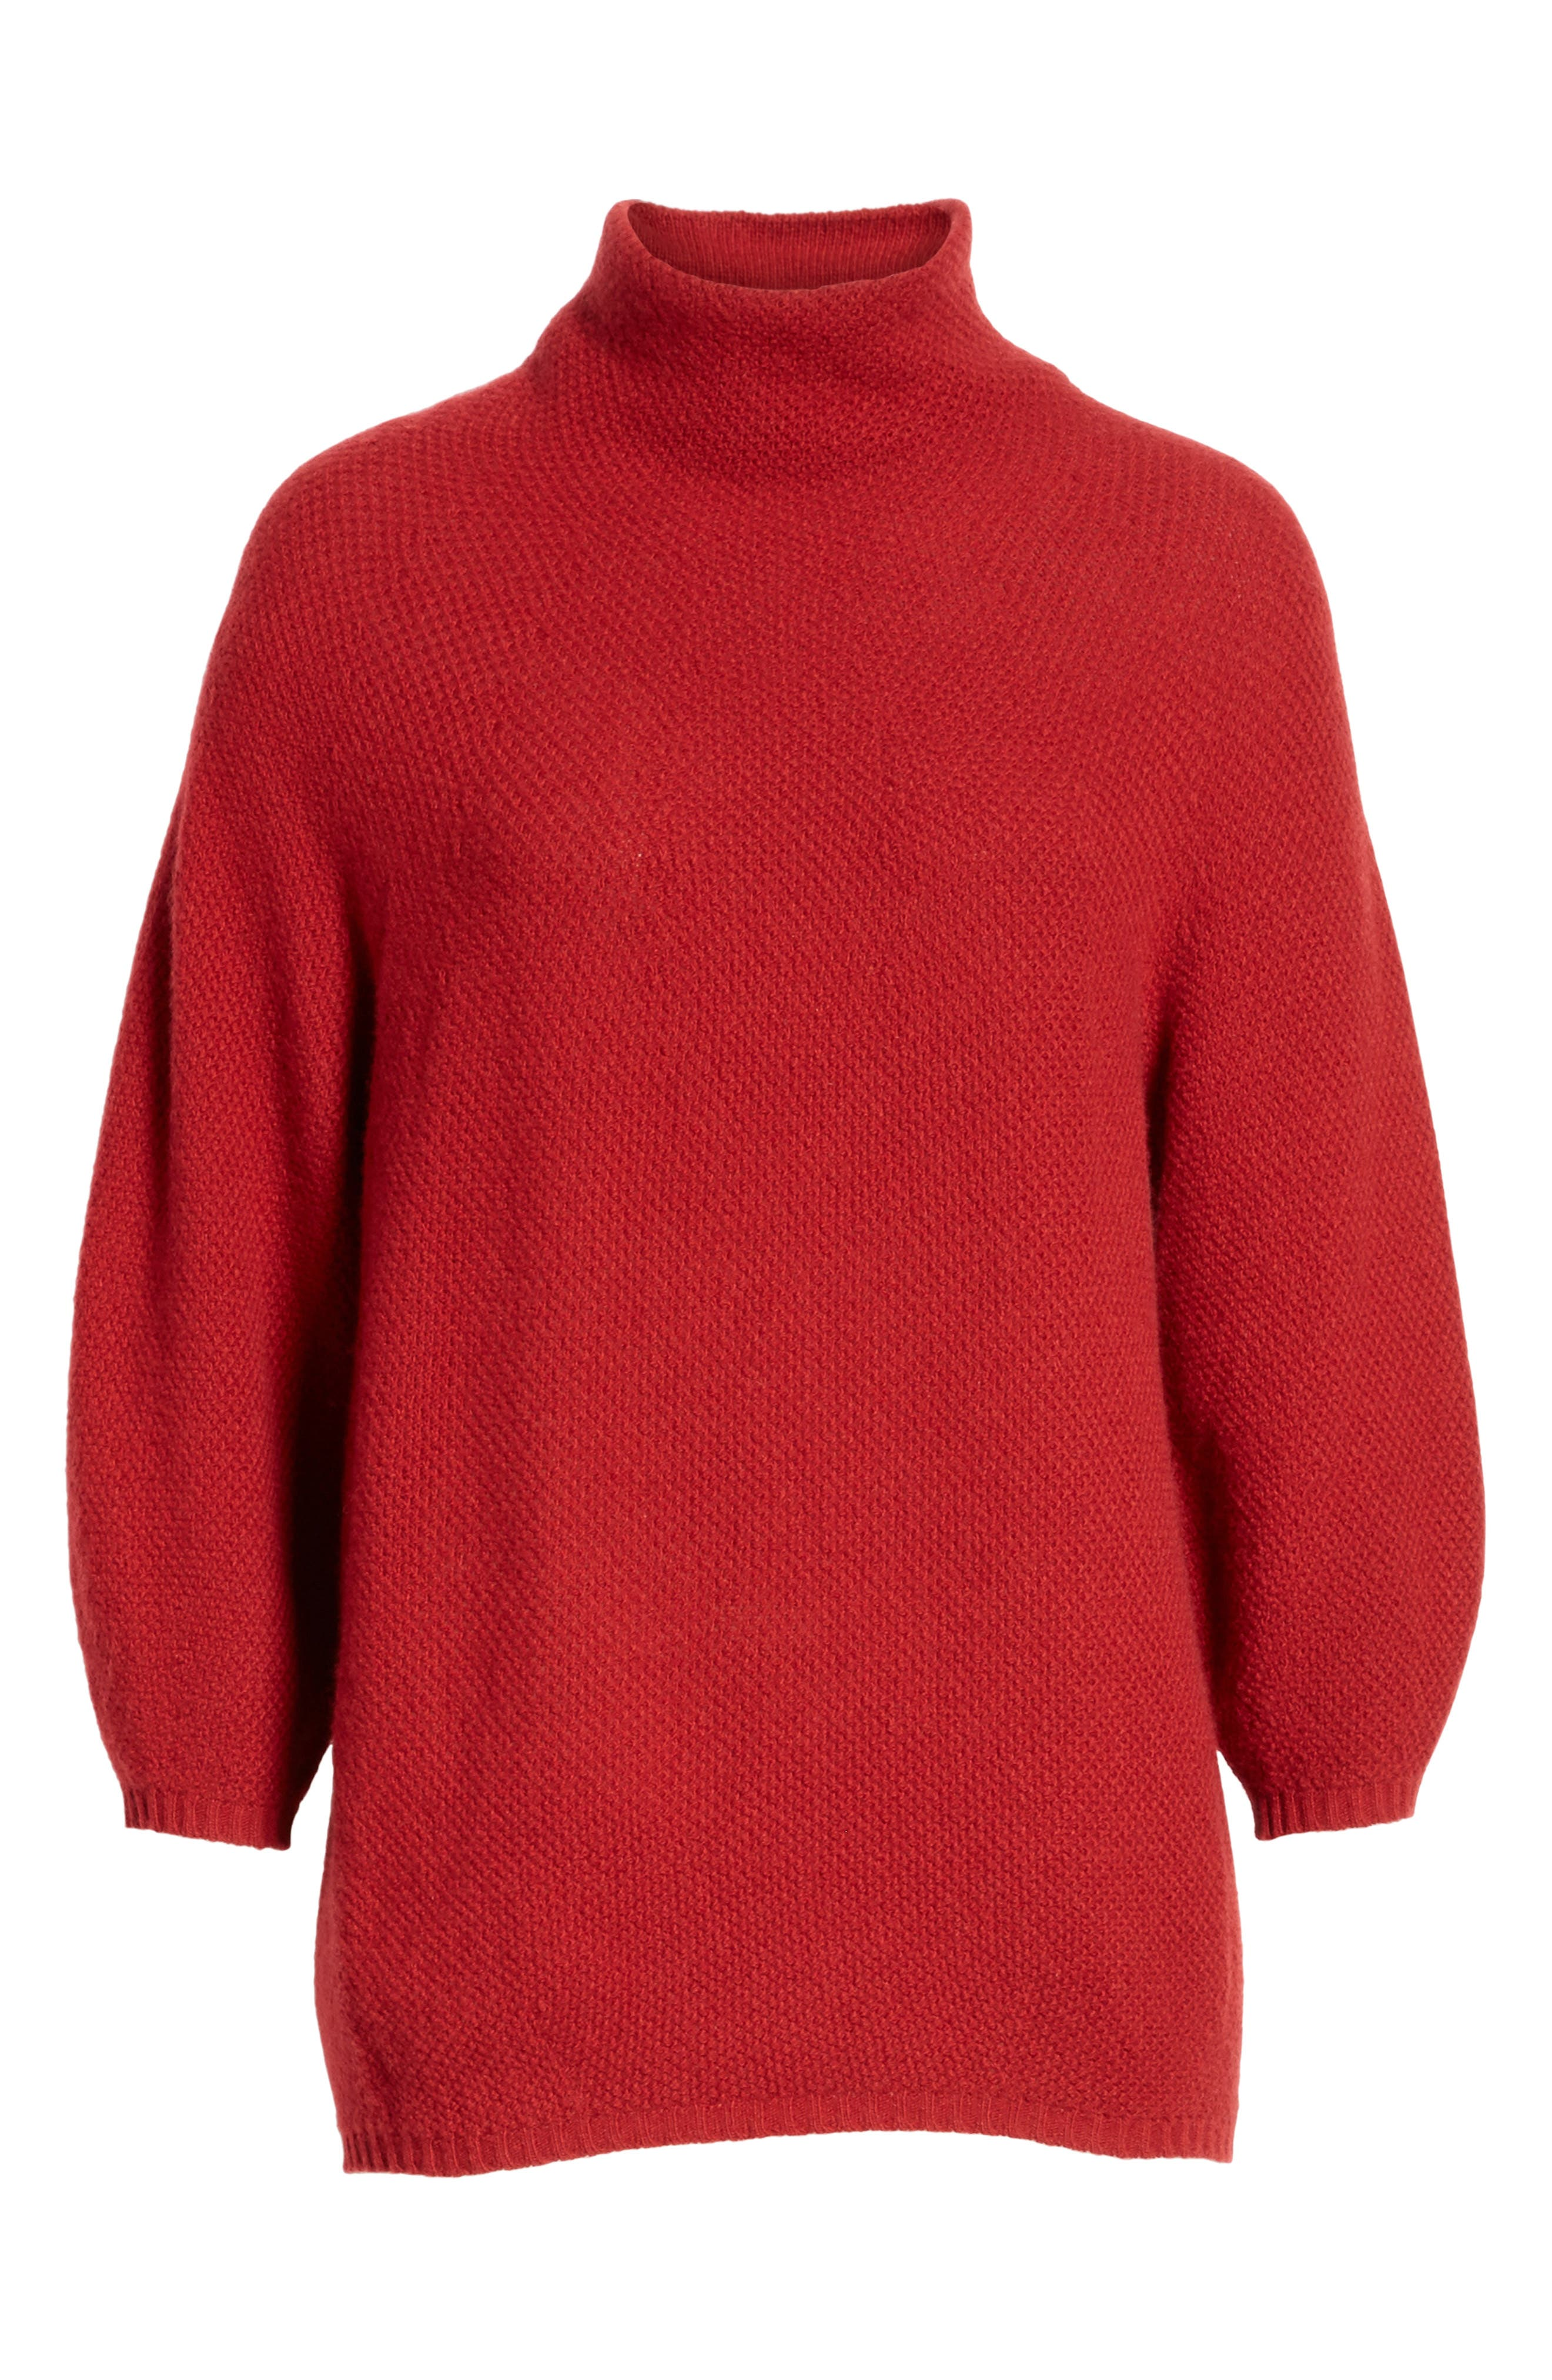 Belgio Wool & Cashmere Sweater,                             Alternate thumbnail 6, color,                             614